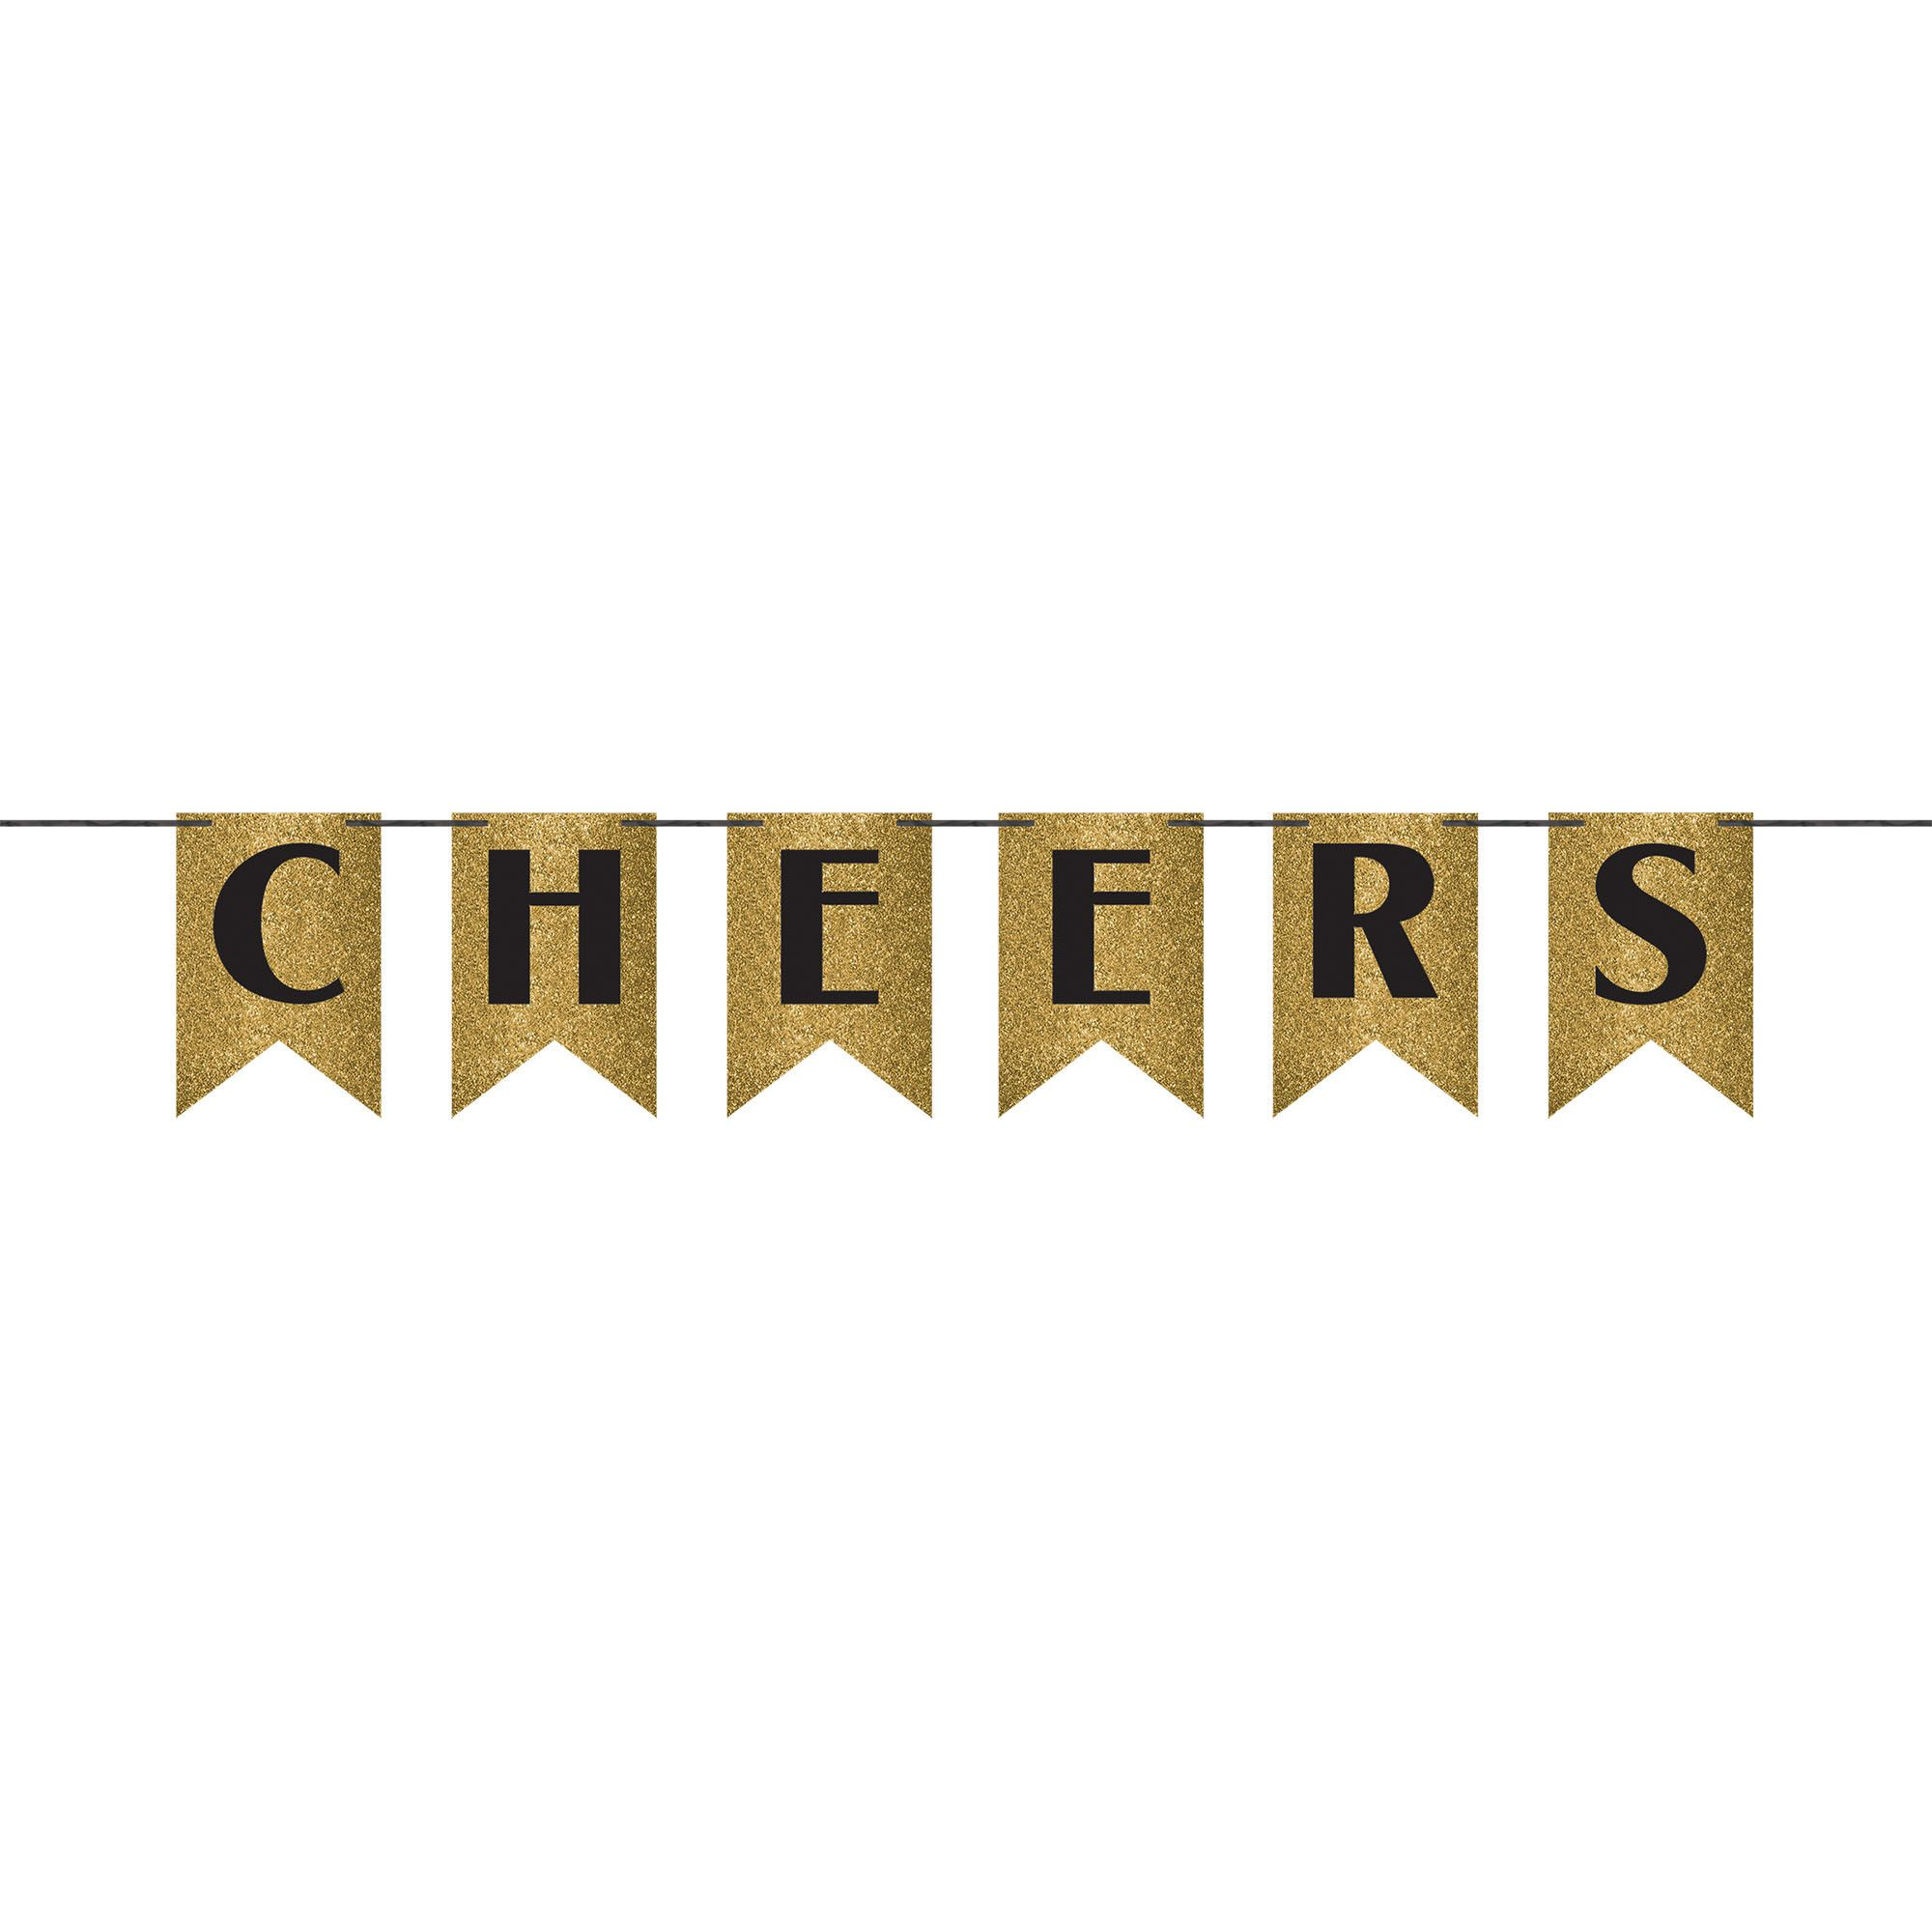 Cheers Pennant Banner